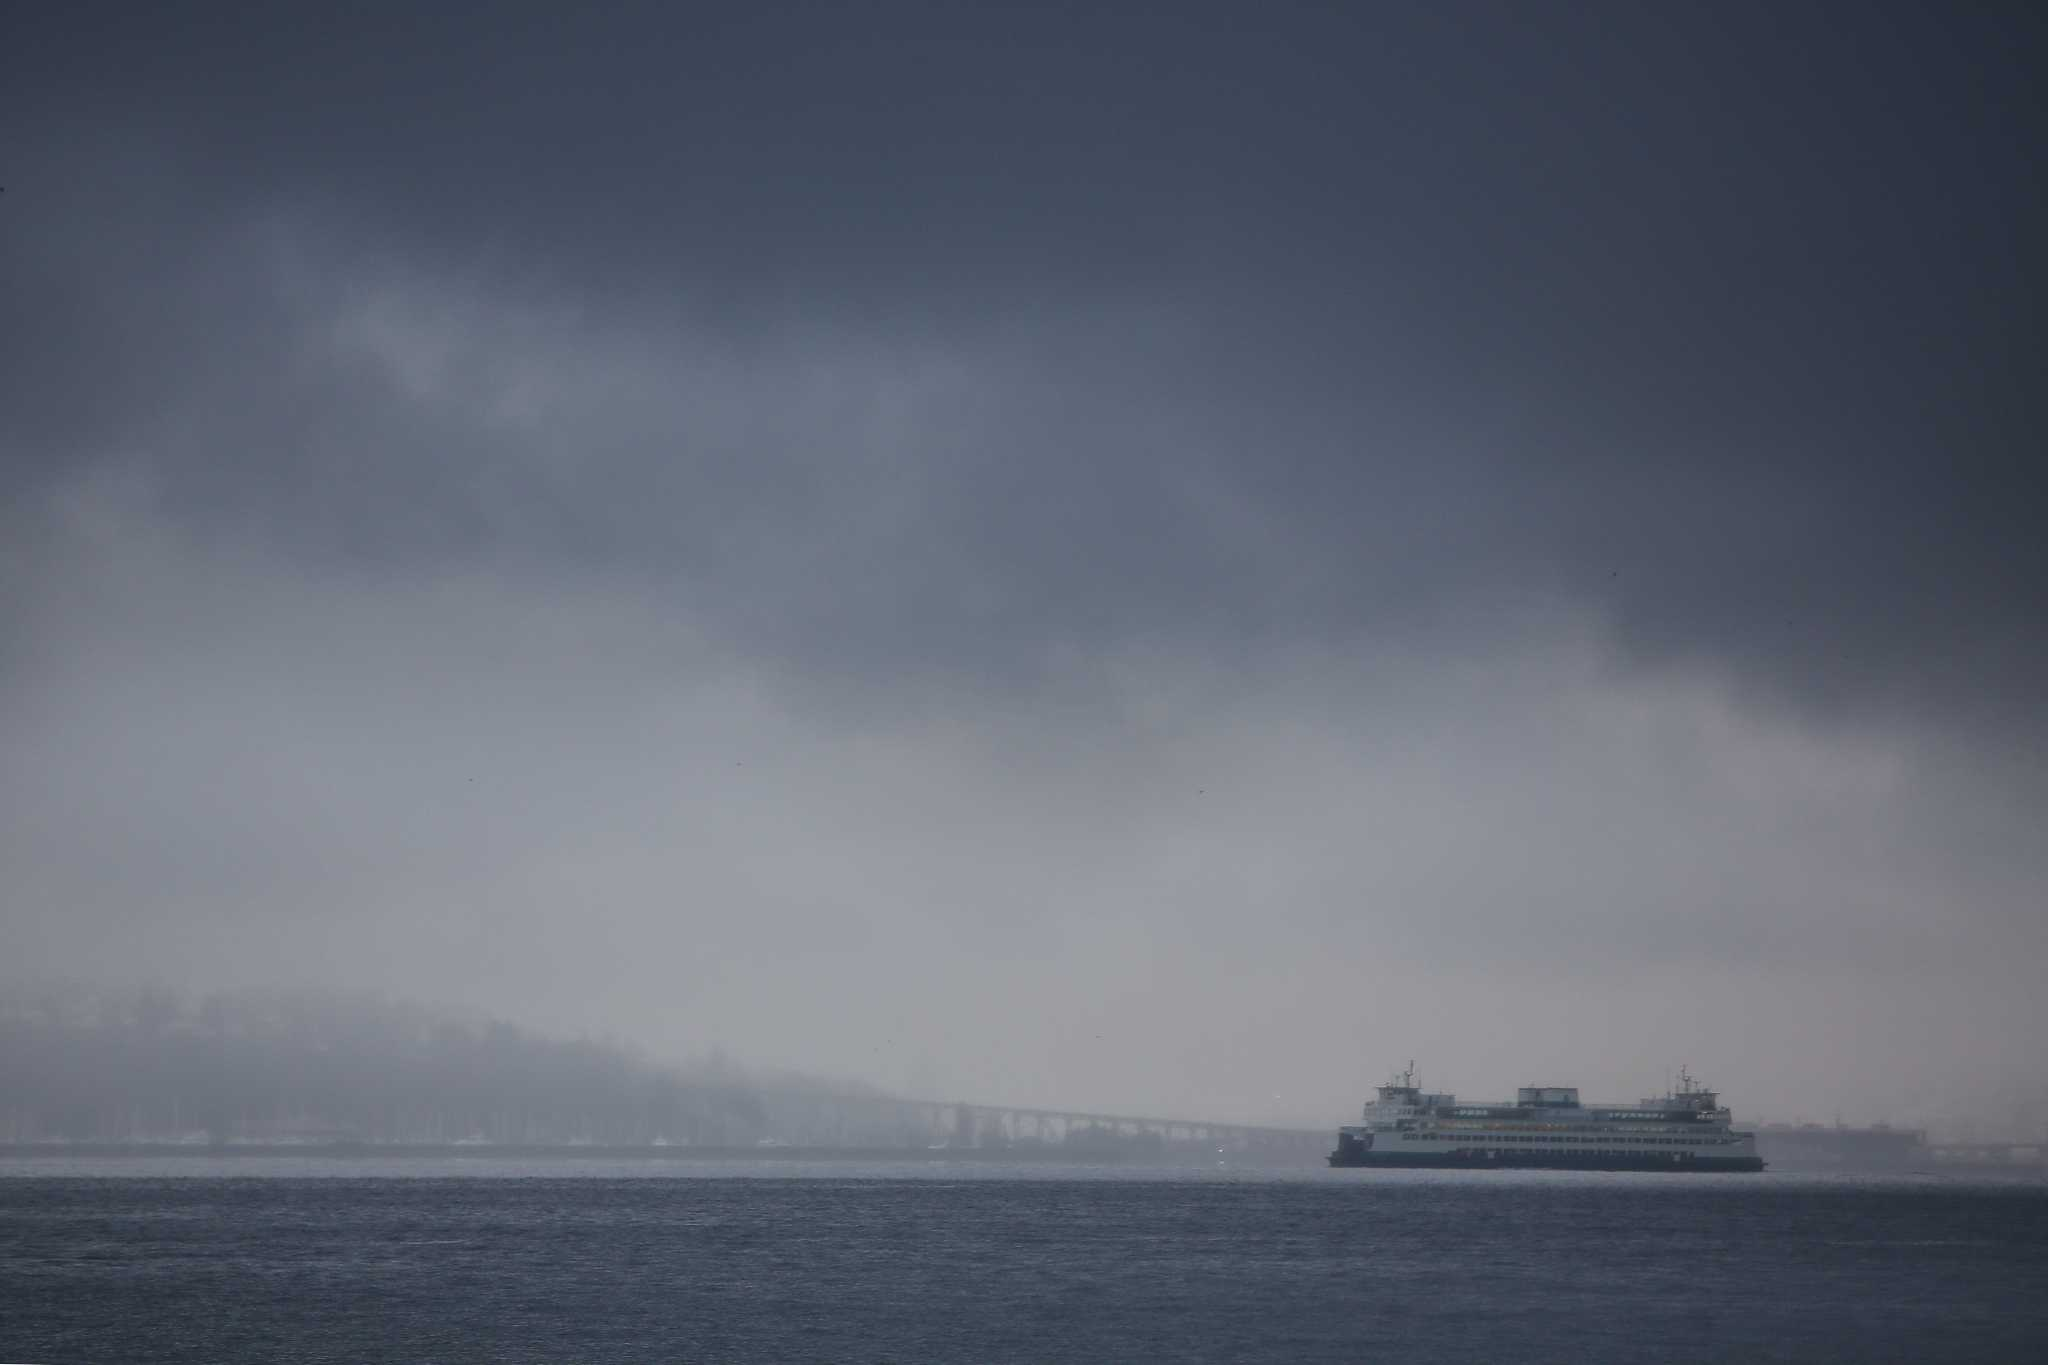 WSF may implement new 'severe weather' schedule; sailings could be cut in half